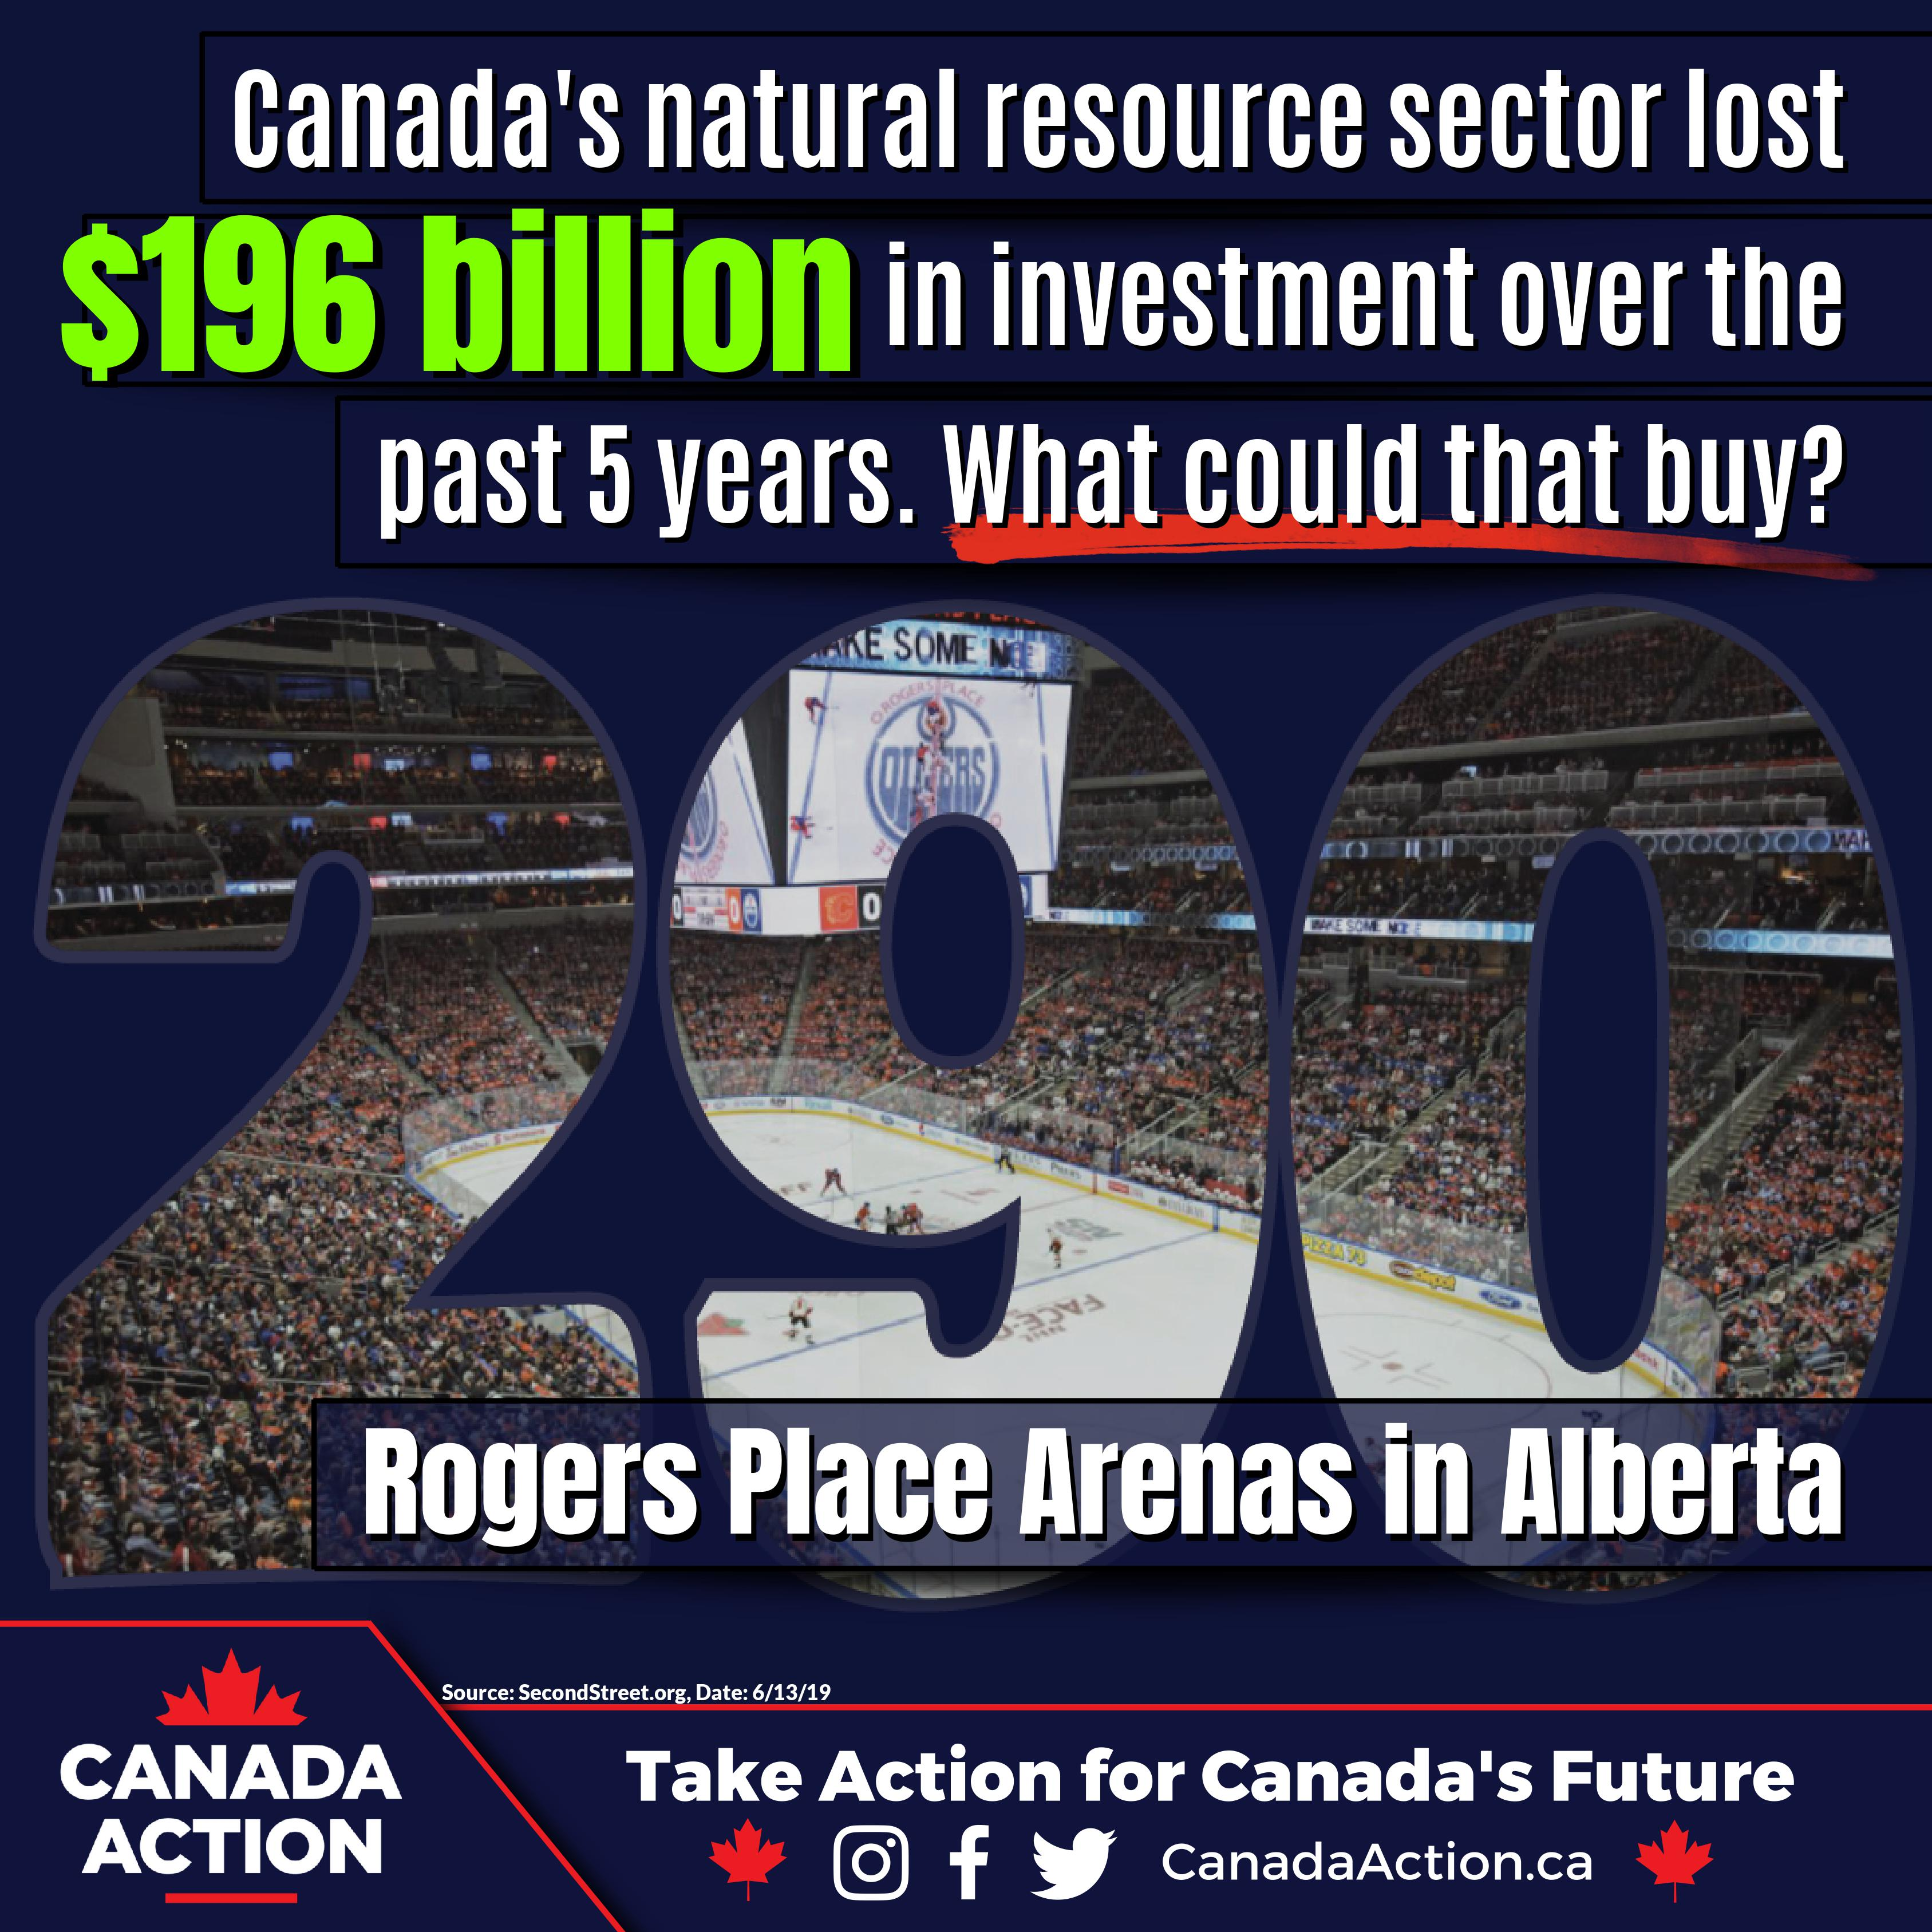 196 billion lost in Canada's natural resource sector over 5 years - could buy roger arenas in AB